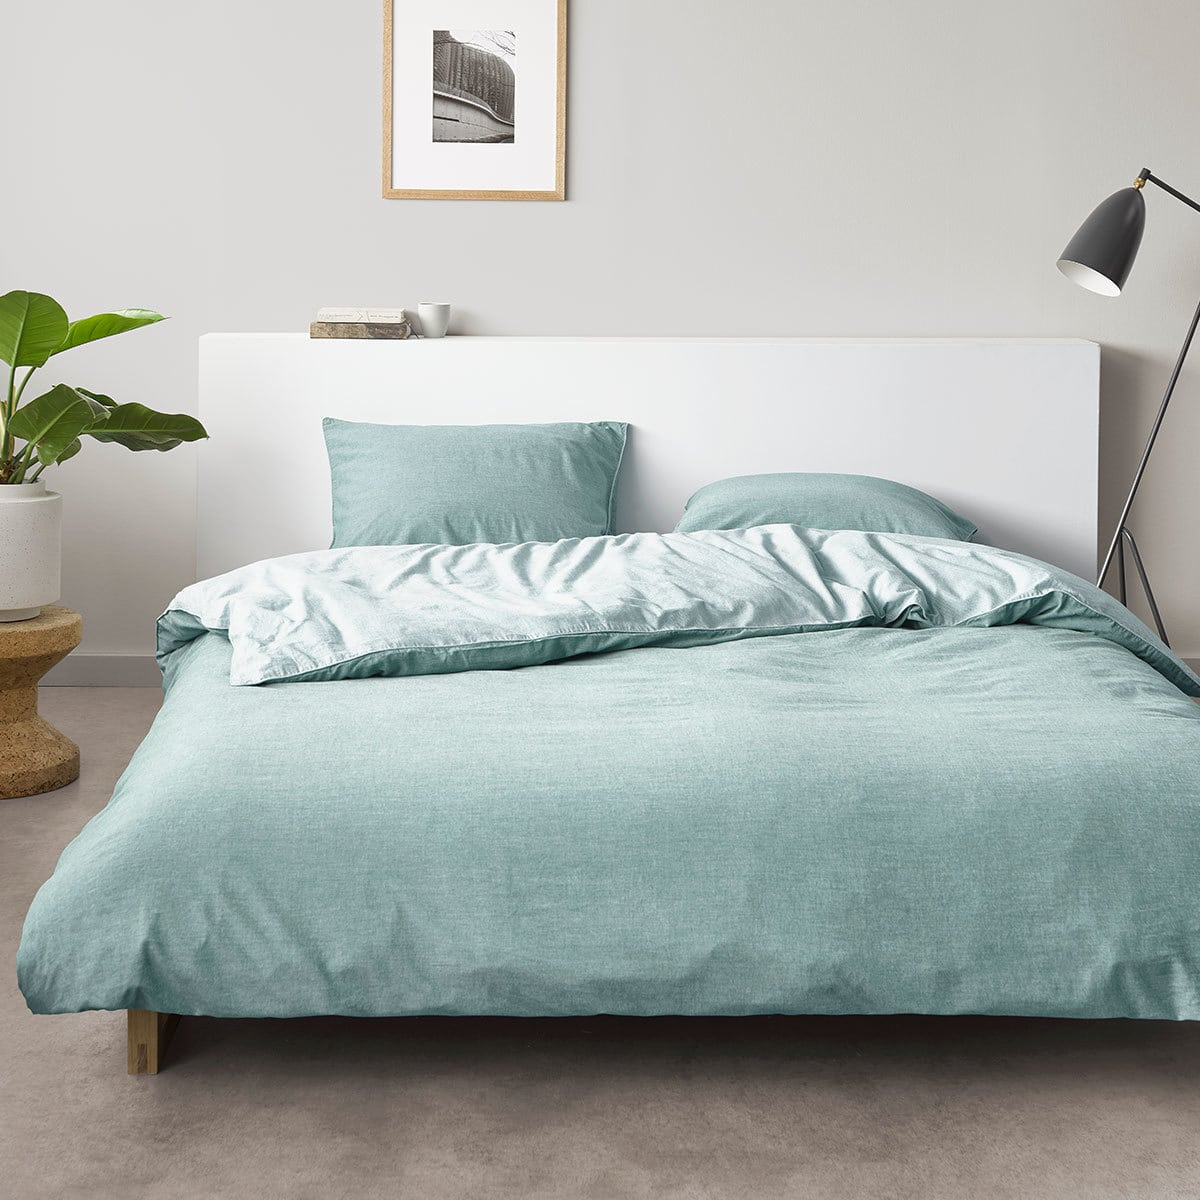 marc o polo bettw sche washed chambray aqua g nstig online kaufen bei bettwaren shop. Black Bedroom Furniture Sets. Home Design Ideas